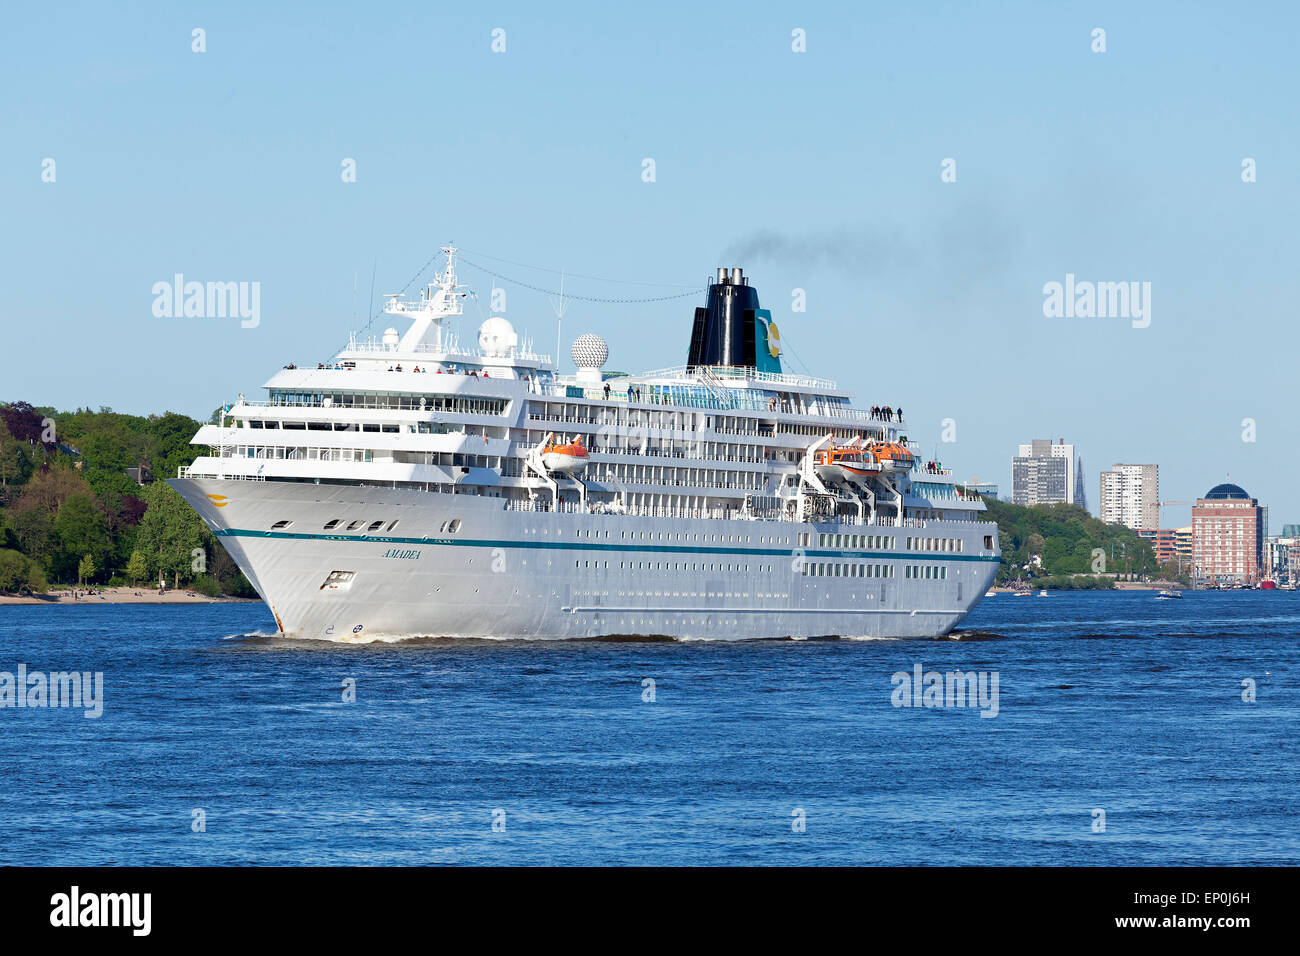 Cruise liner ´Amadea´ on River Elbe during 826. Harbour Birthday, Hamburg, Germany - Stock Image